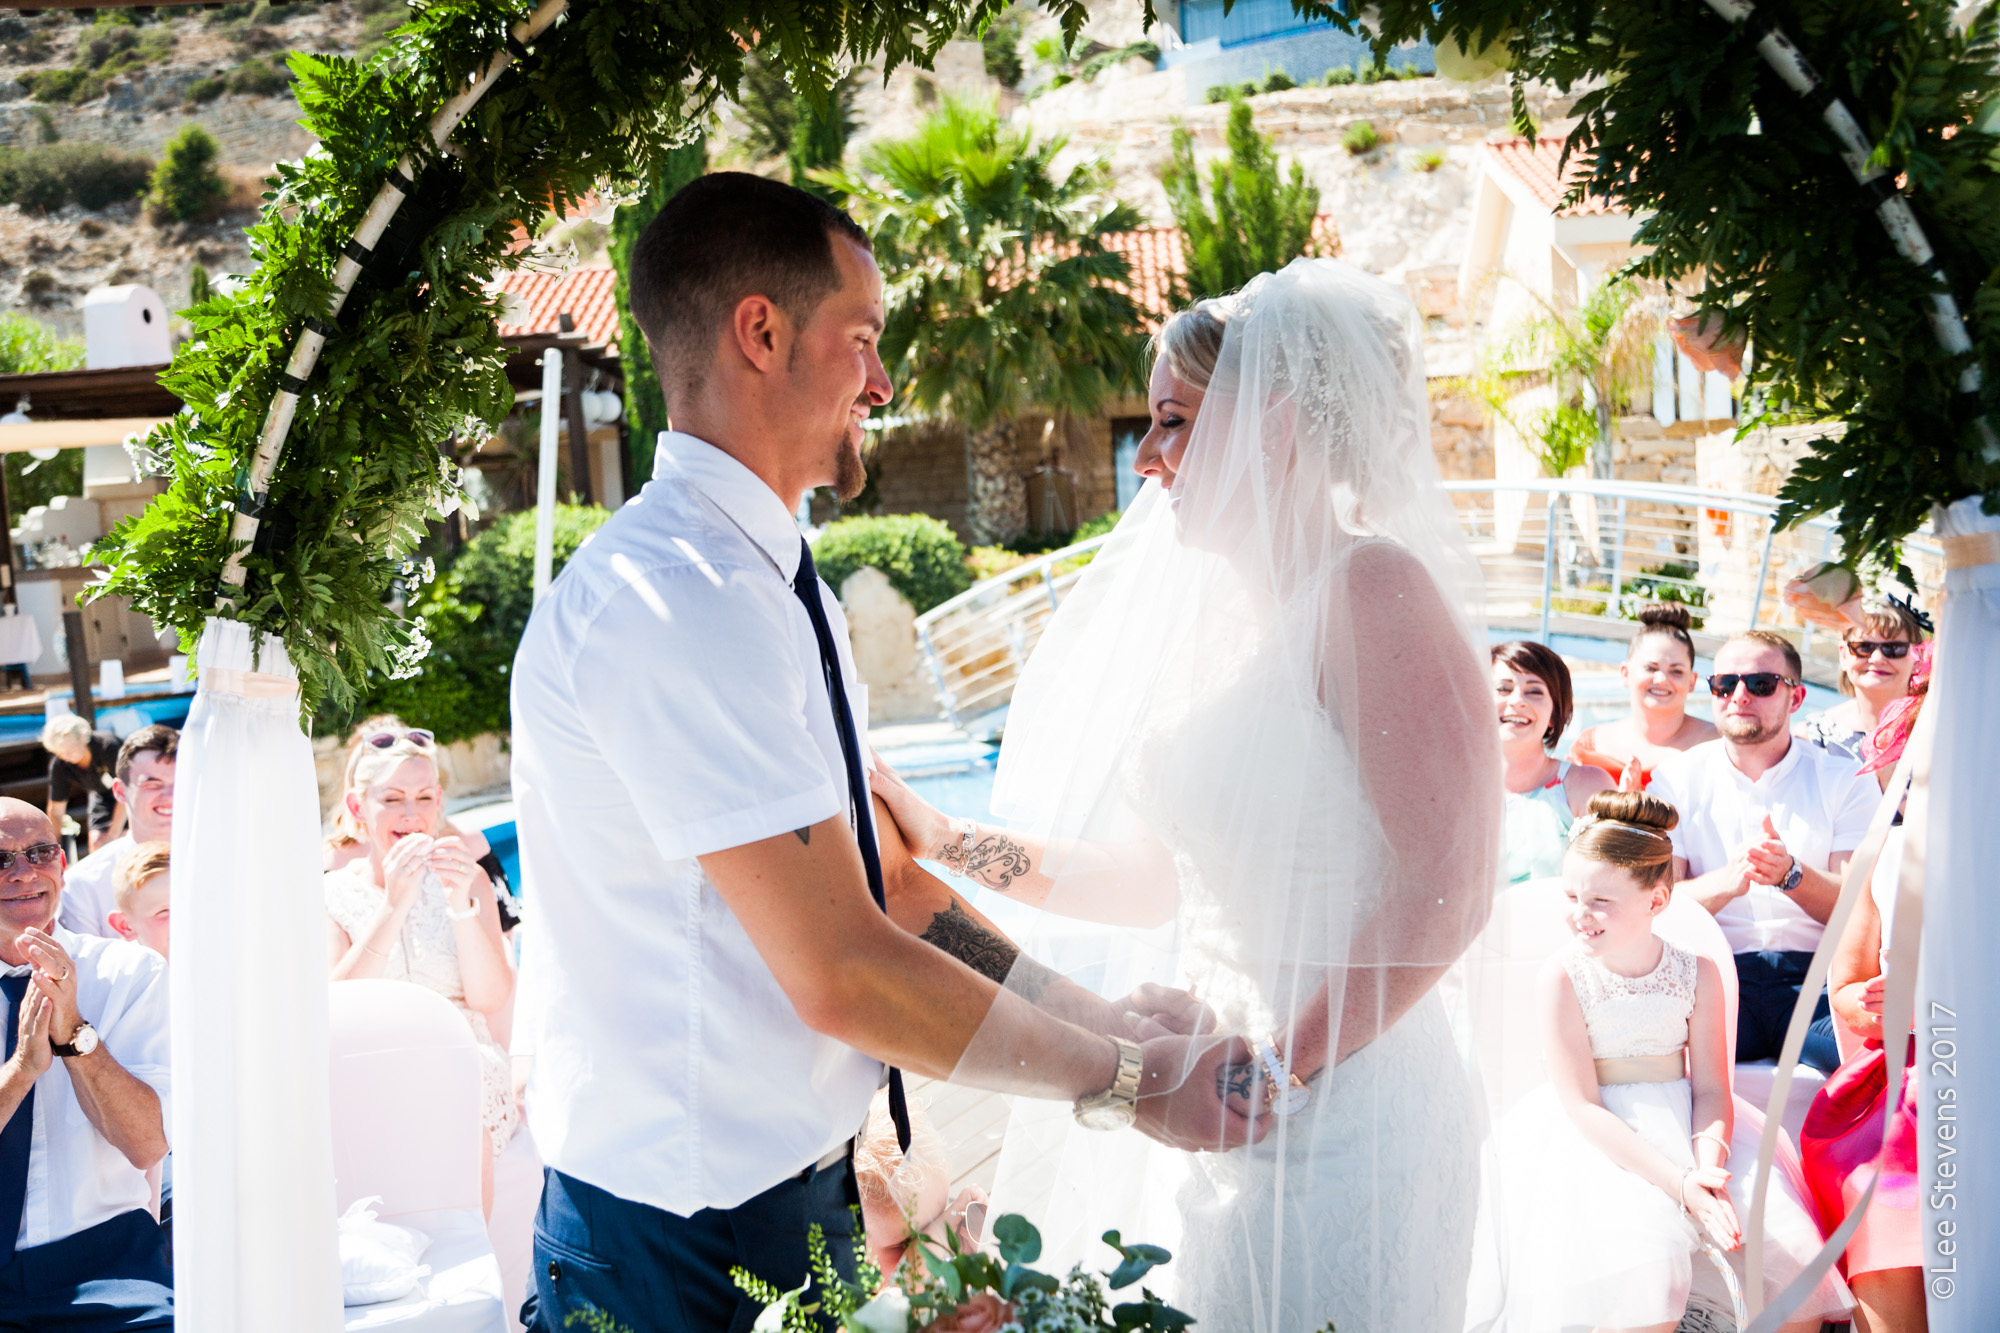 Laura Wedding at Panorama Villa in Cyprus 2019